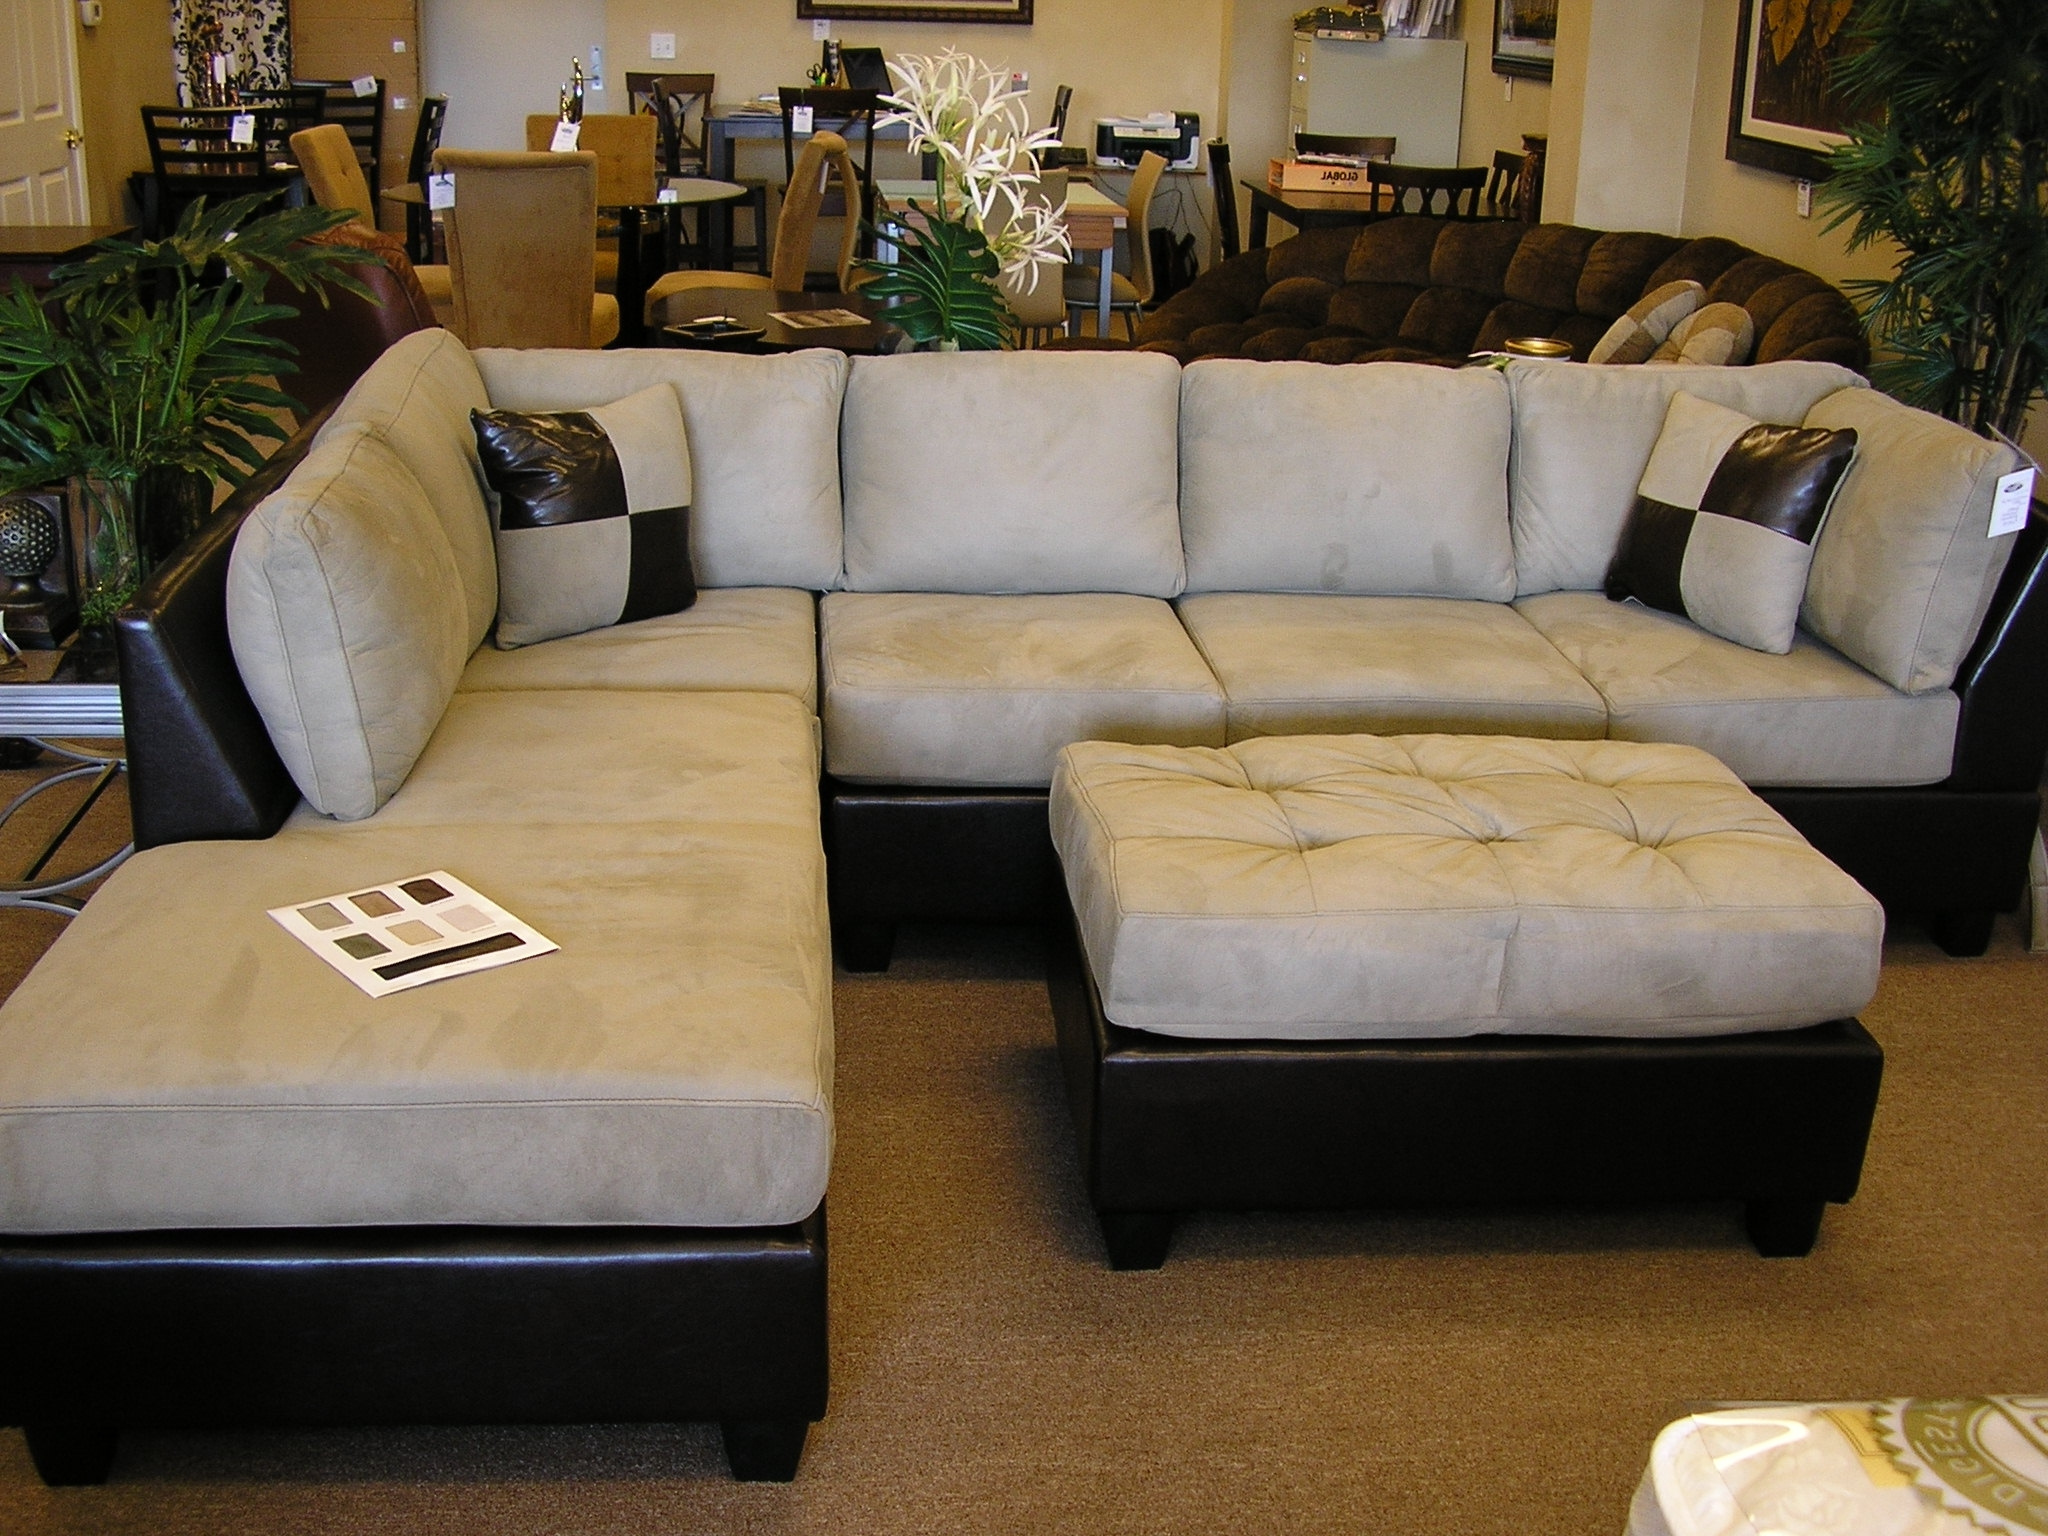 2017 Sectional Sofas With Chaise And Ottoman Regarding Furniture : Sectional Chaise Lounge Sofa Double Along With (View 3 of 15)